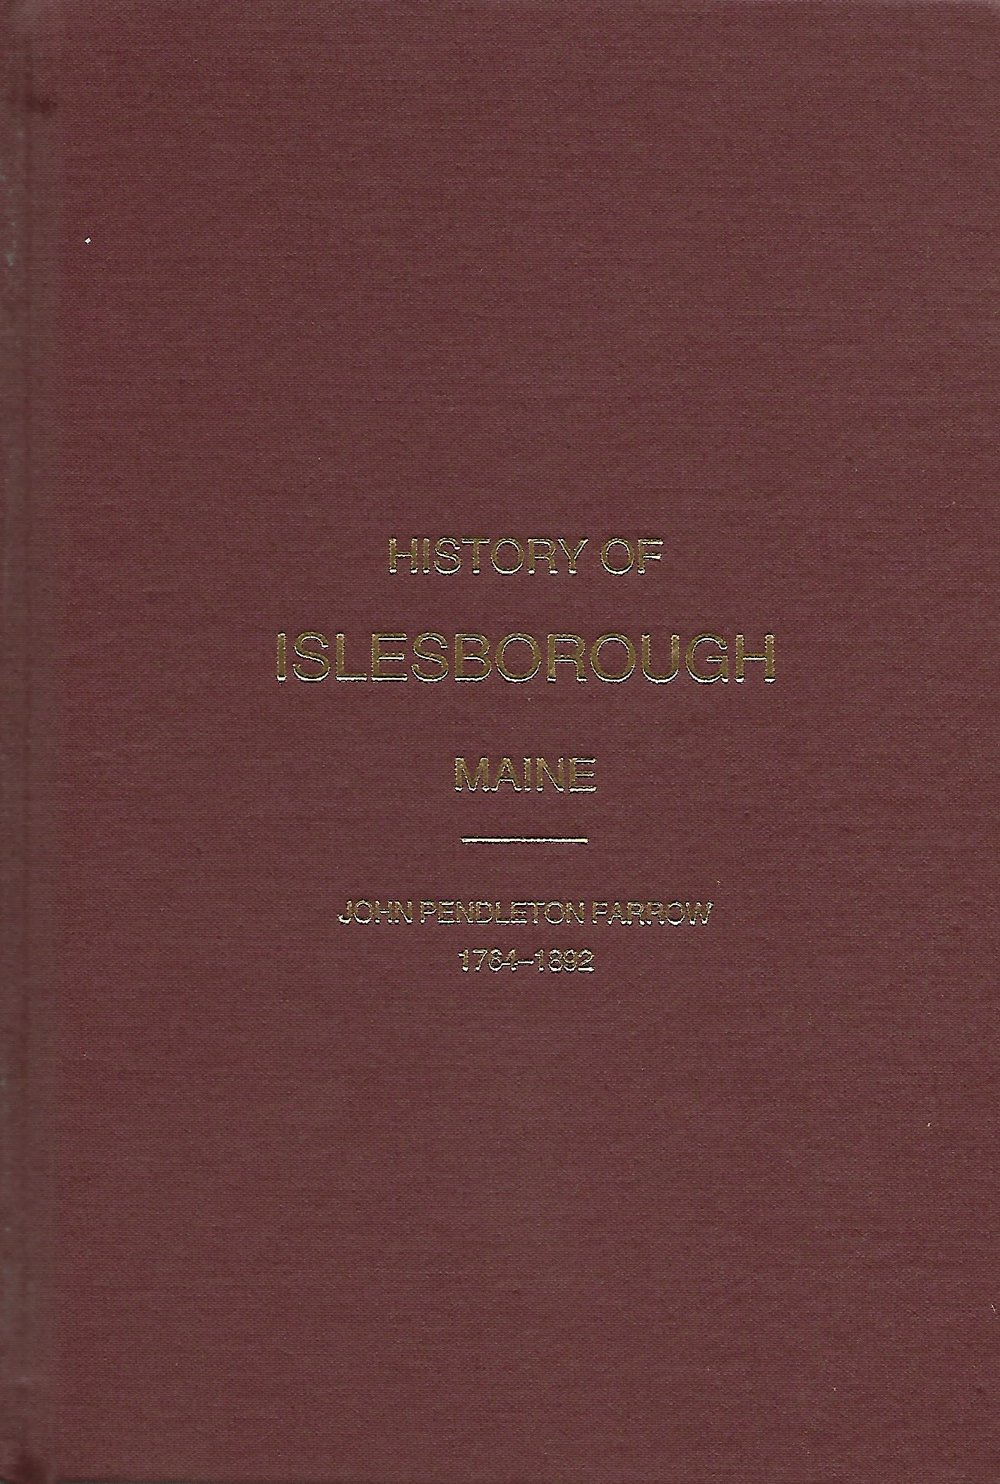 - This early history of Islesborough, collected and written by John Pendleton Farrow, Master Mariner was originally published in 1893. This book has been reprinted four times and documents daily life on the island including early families' history and local industry. An early map showing the original lots, as well as descriptions of individual lots is also included. A supplement with additions and corrections is also available for sale.Author: John Pendleton Farrow, Master MarinerPrice: $37.91Plus Maine Sales Tax $2.09